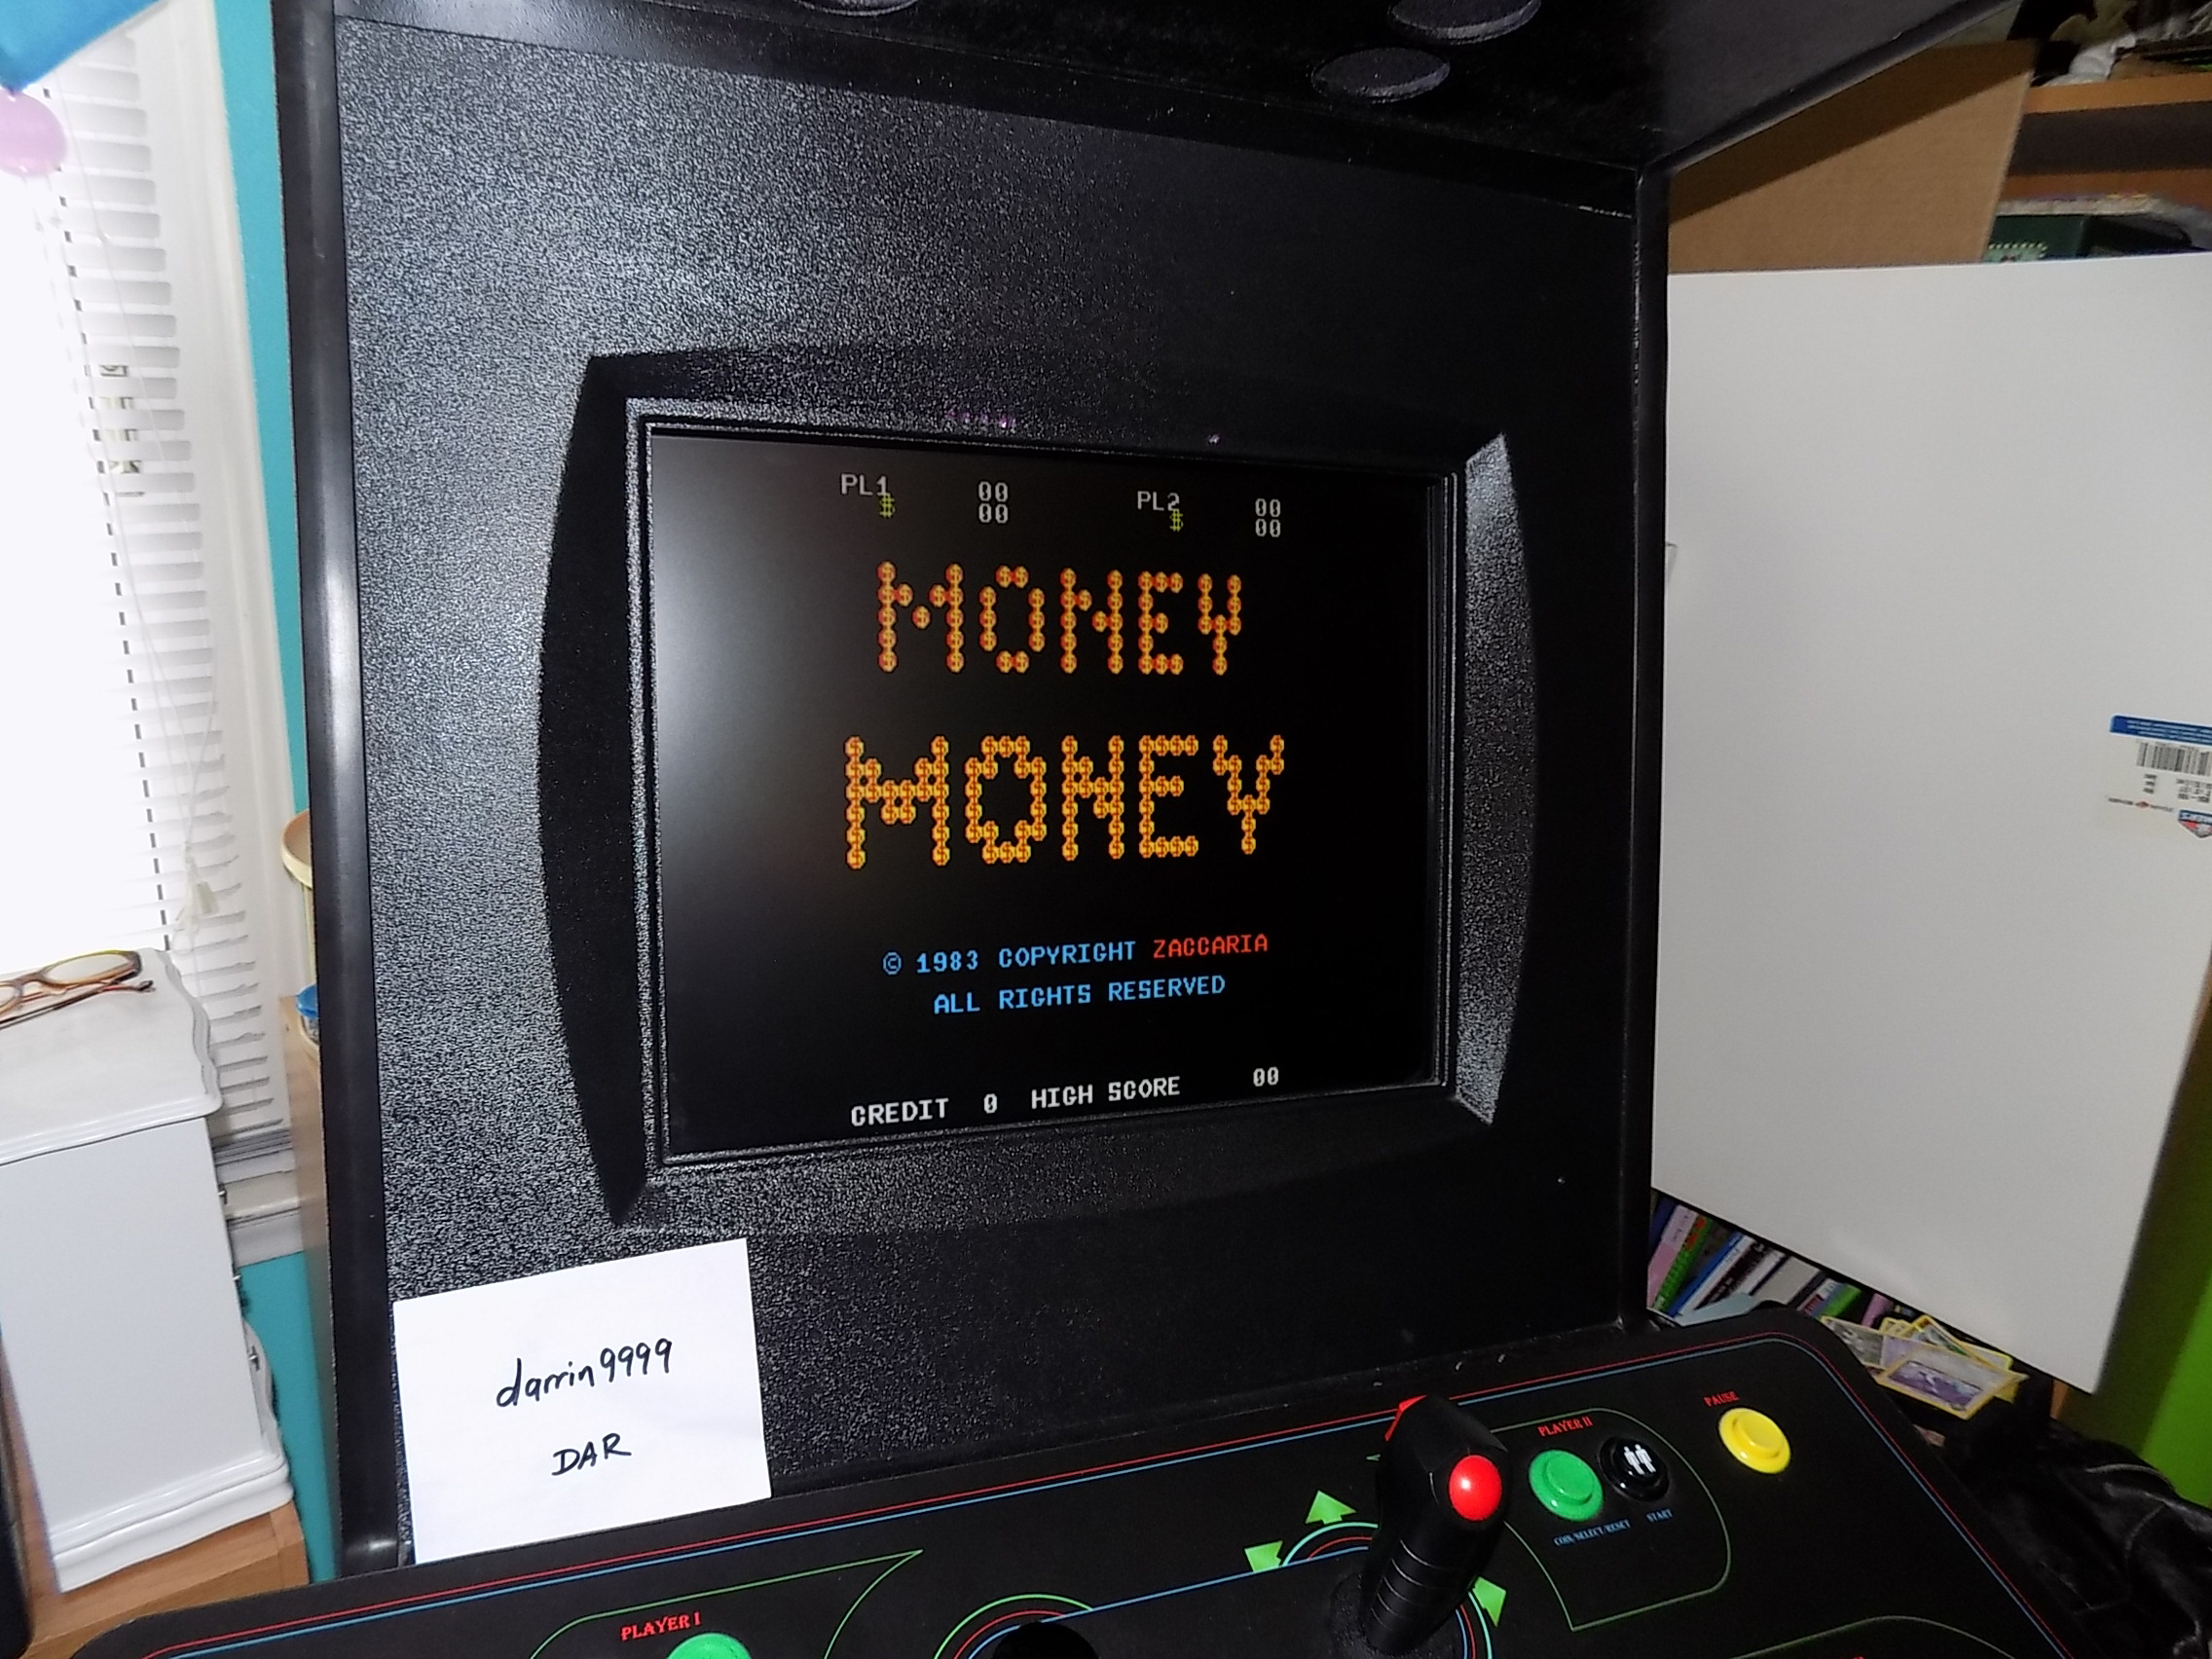 darrin9999: Money Money [monymony] (Arcade Emulated / M.A.M.E.) 63,500 points on 2018-05-08 13:08:51